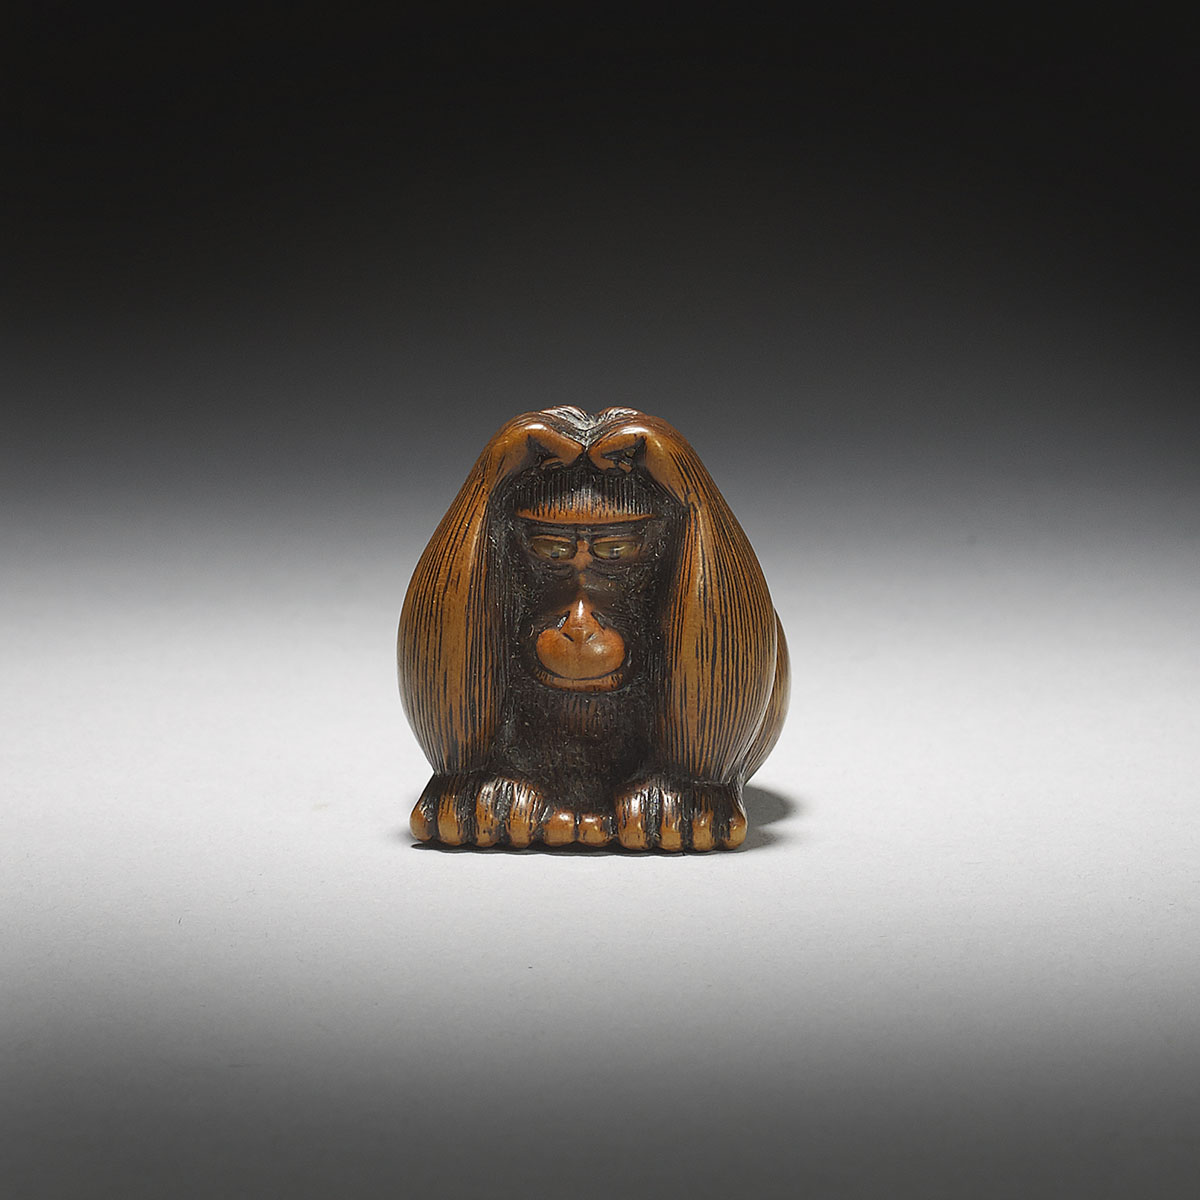 Stained Boxwood Netsuke of a Monkey Holding His Head, MR2963_v1